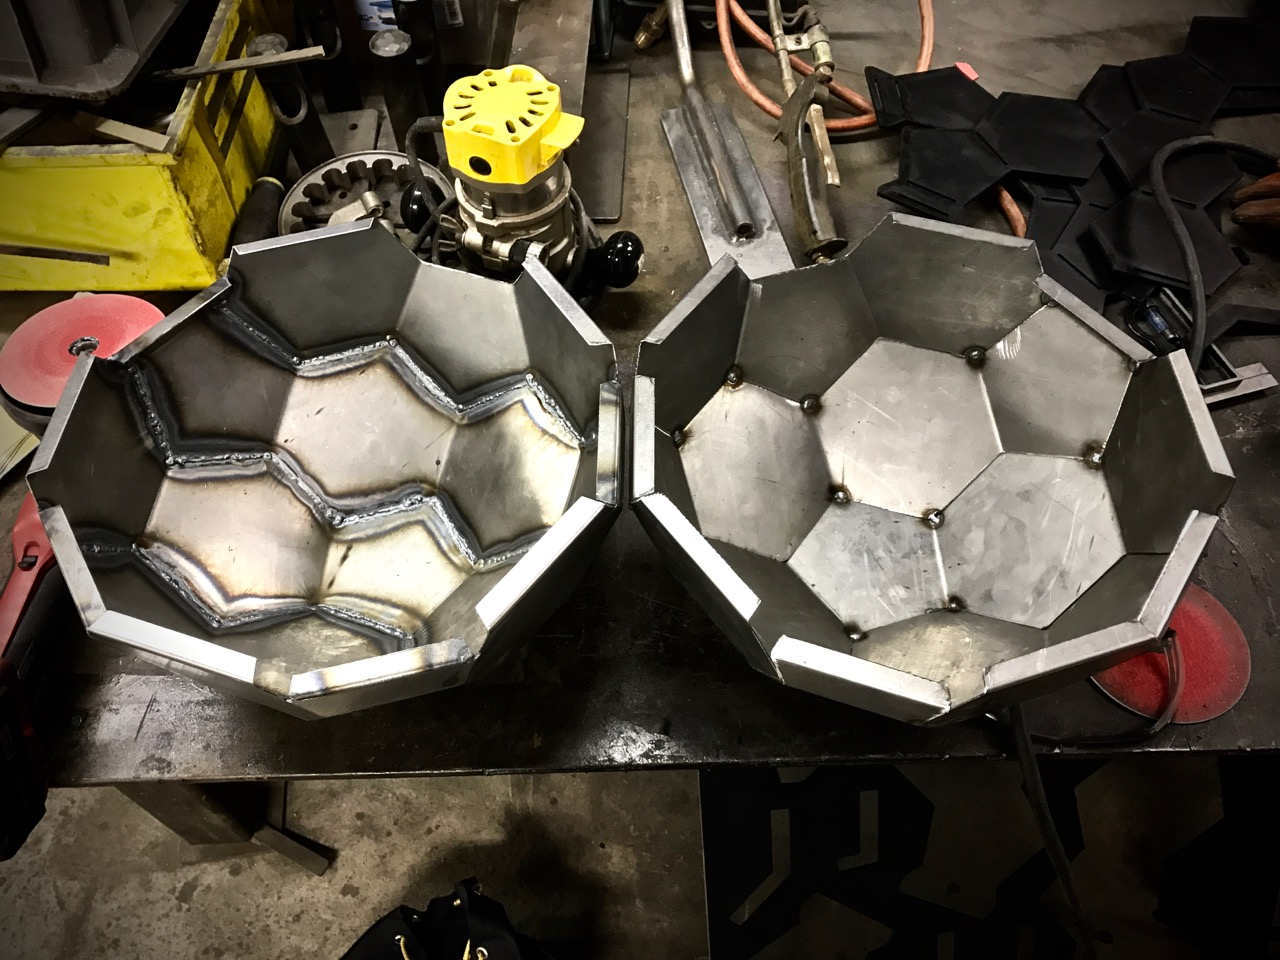 Fabrication Examples